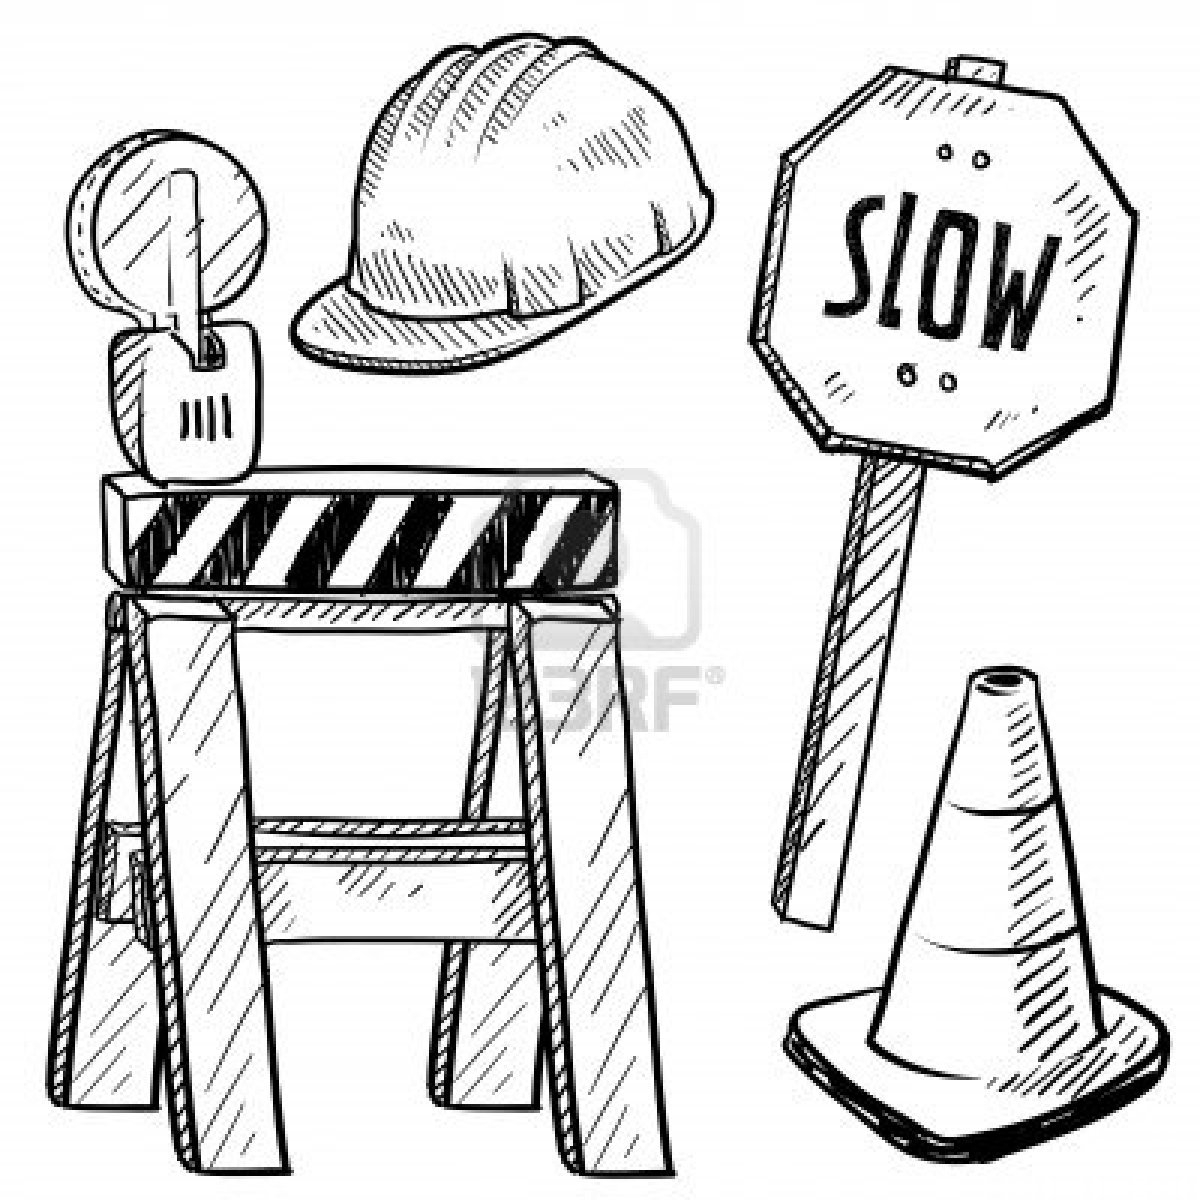 Sesame Street Sign Coloring Page Street Signs Coloring Pages At Getdrawings Free For Personal